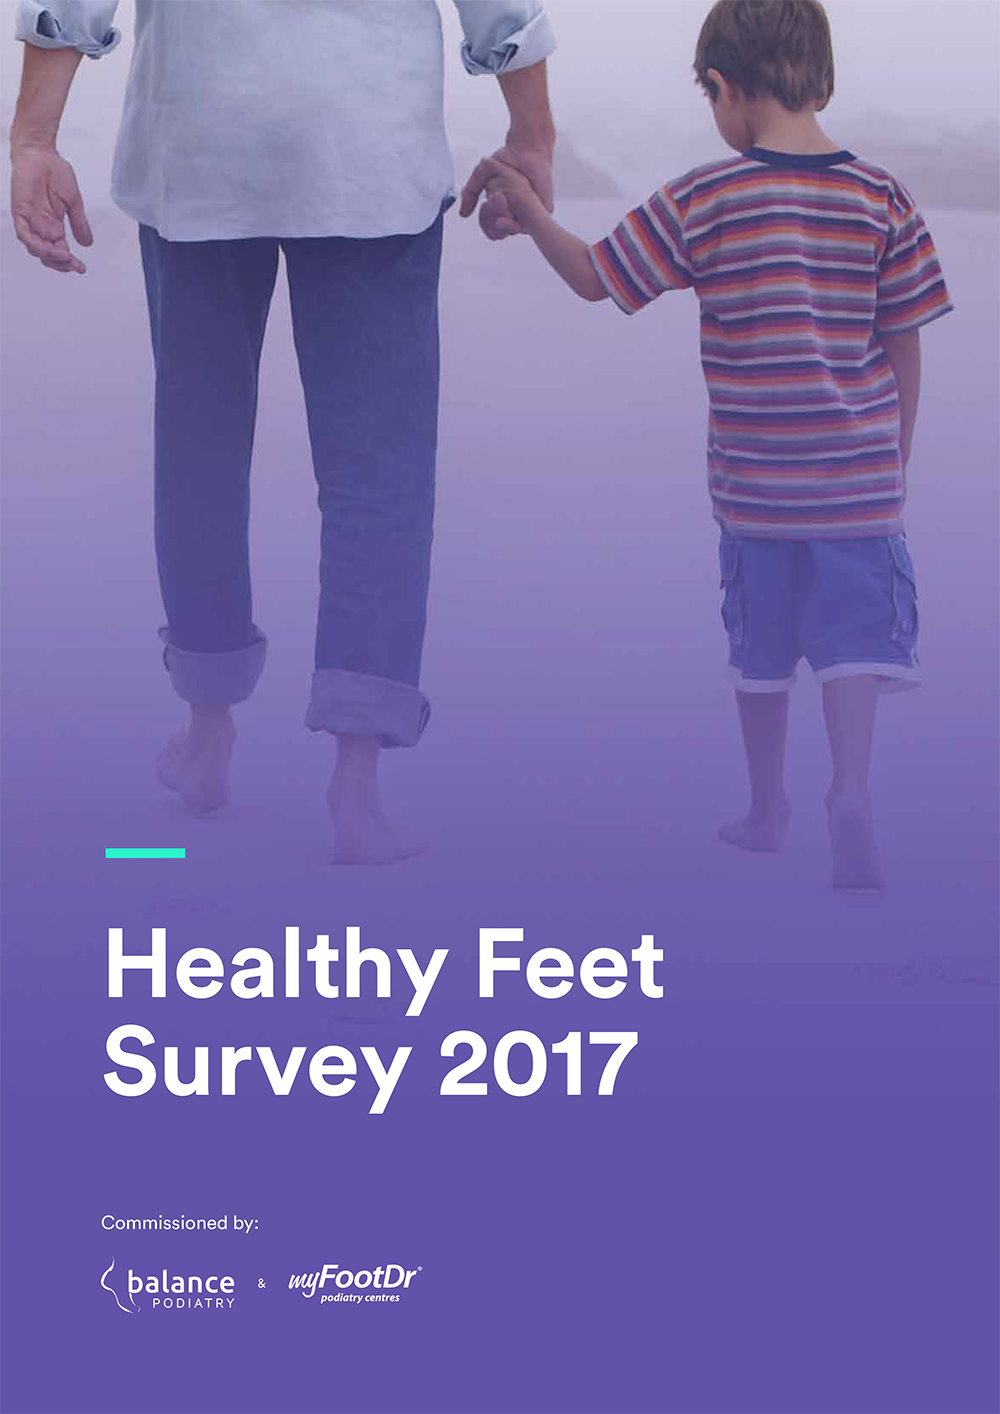 My FootDr Healthy Feet Survey 2017